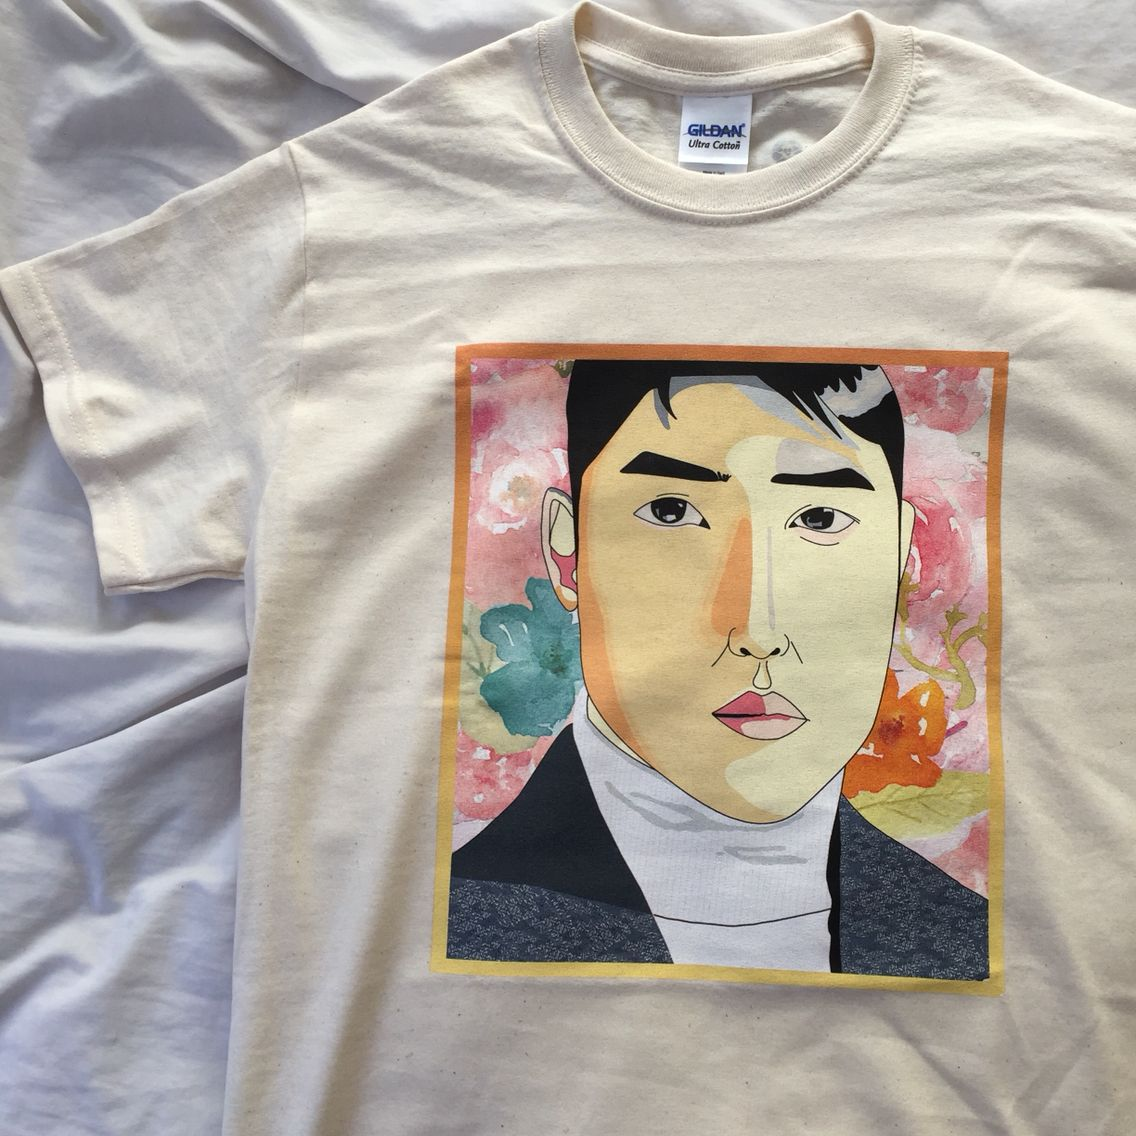 Kyungsoodo From Exo Design This Is A Sample T Shirt If You Are